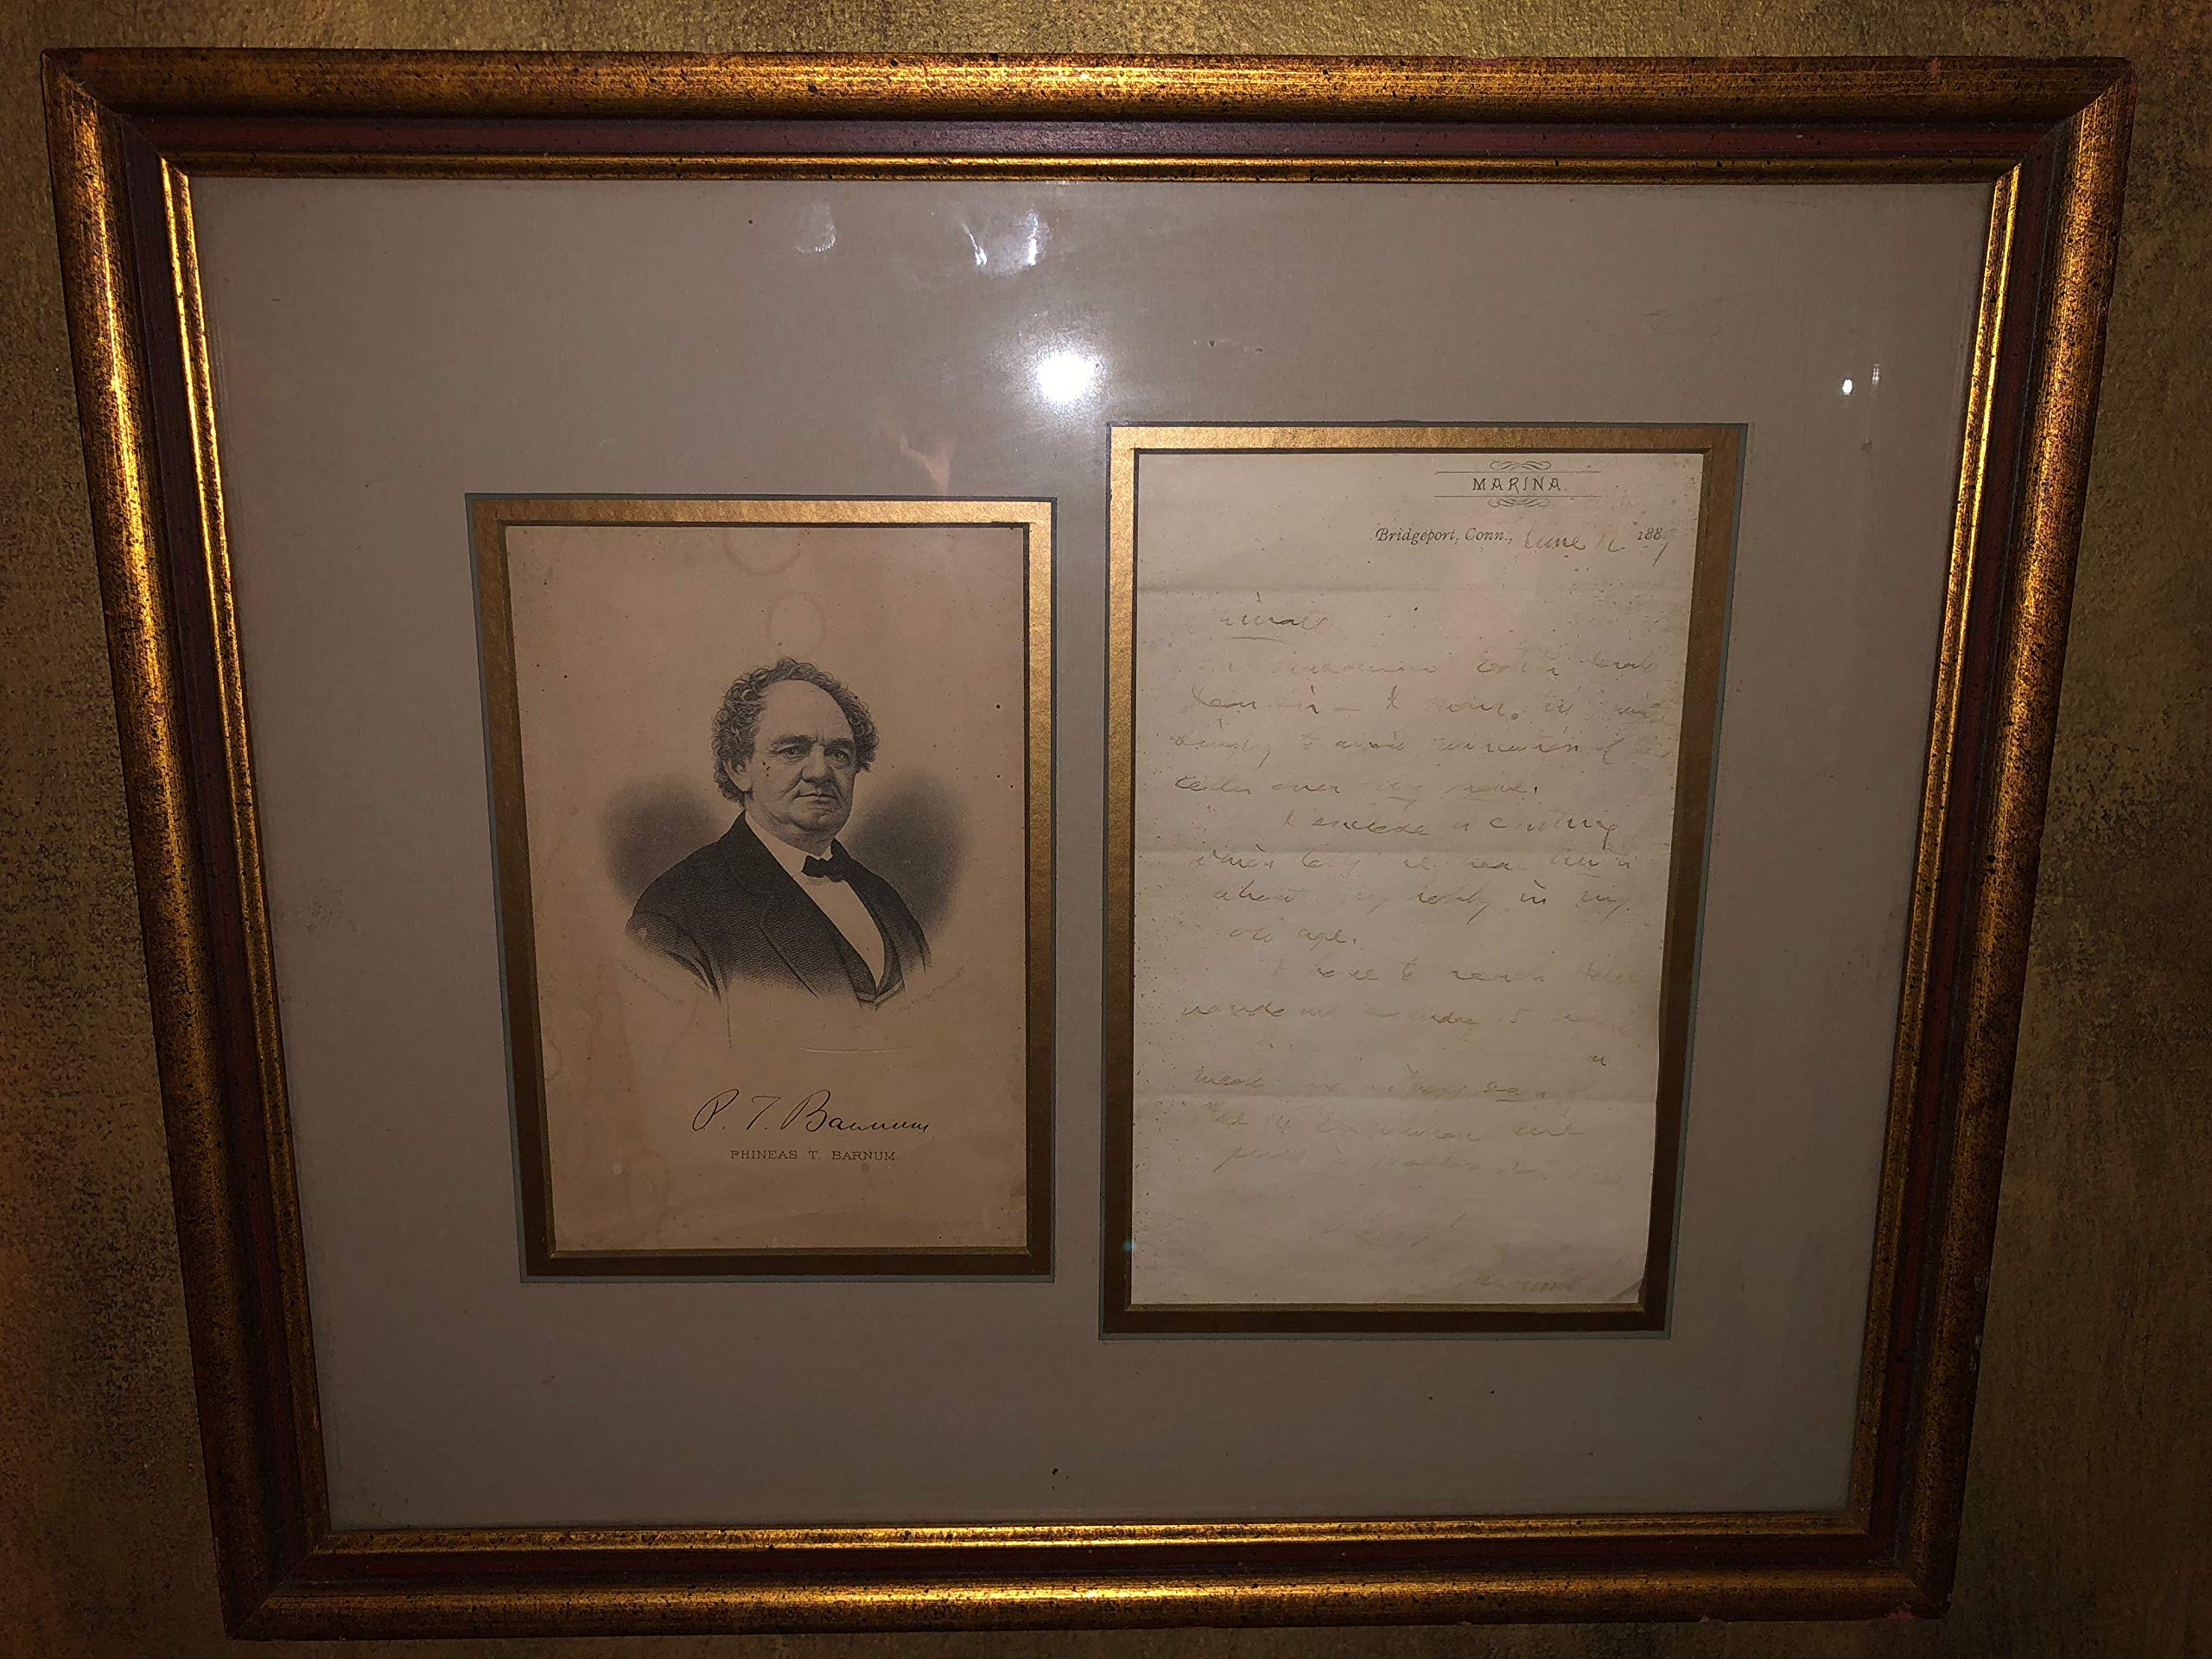 P.T. Barnum 1889 Signed Handwritten Letter with Photo Framed, Autographed, PT Barnum, Barnum and Bailey, Circus